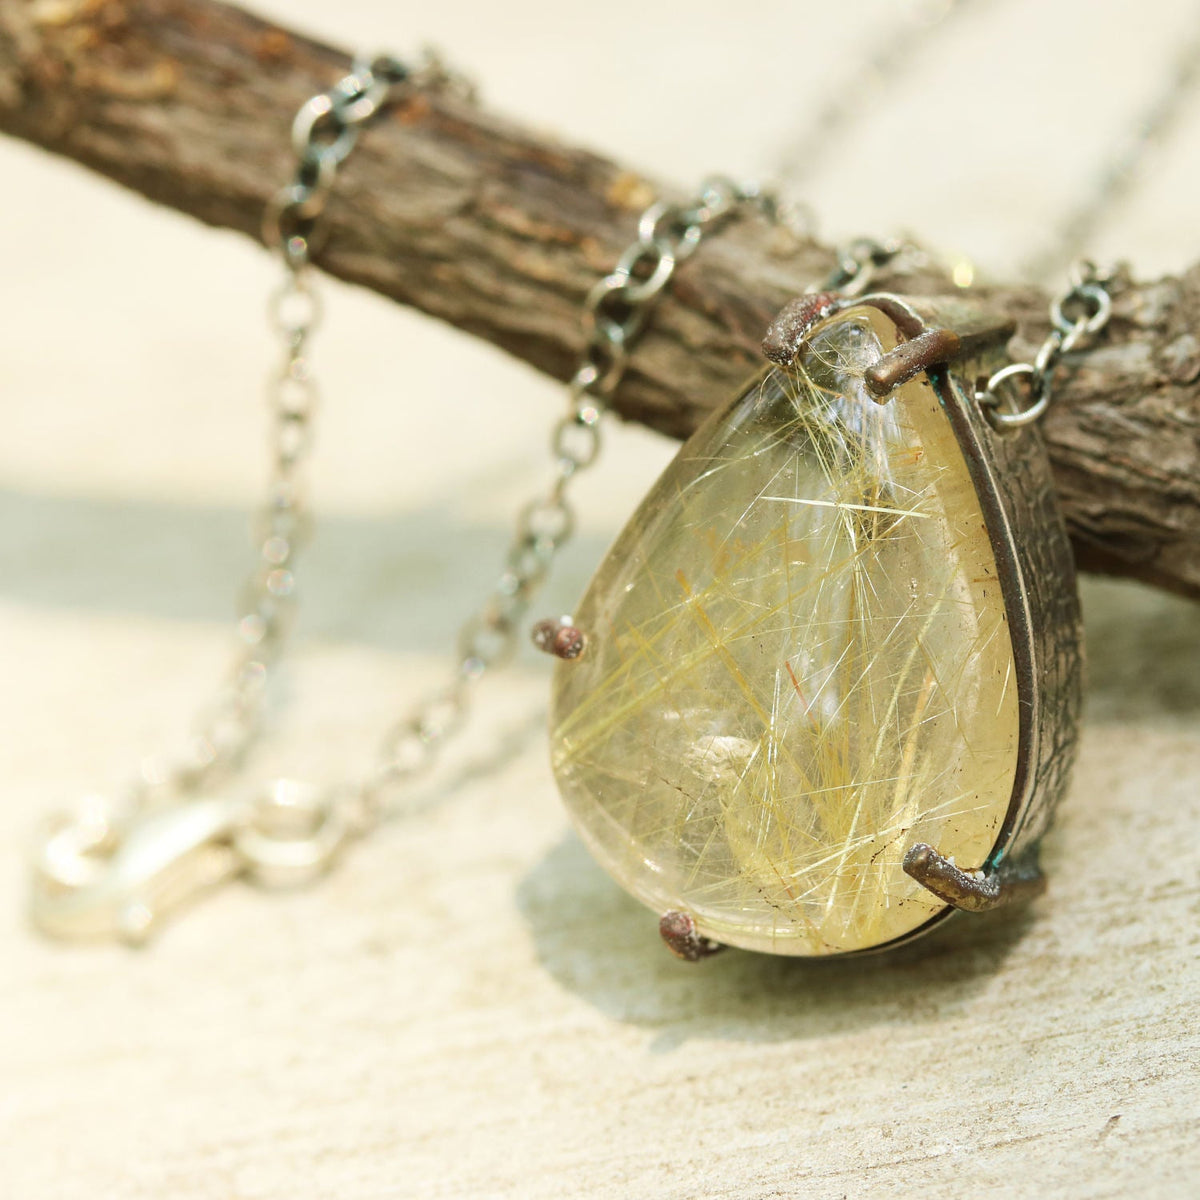 Teardrop rutilated quartz pendant necklace in silver and brass setting with thin link chain